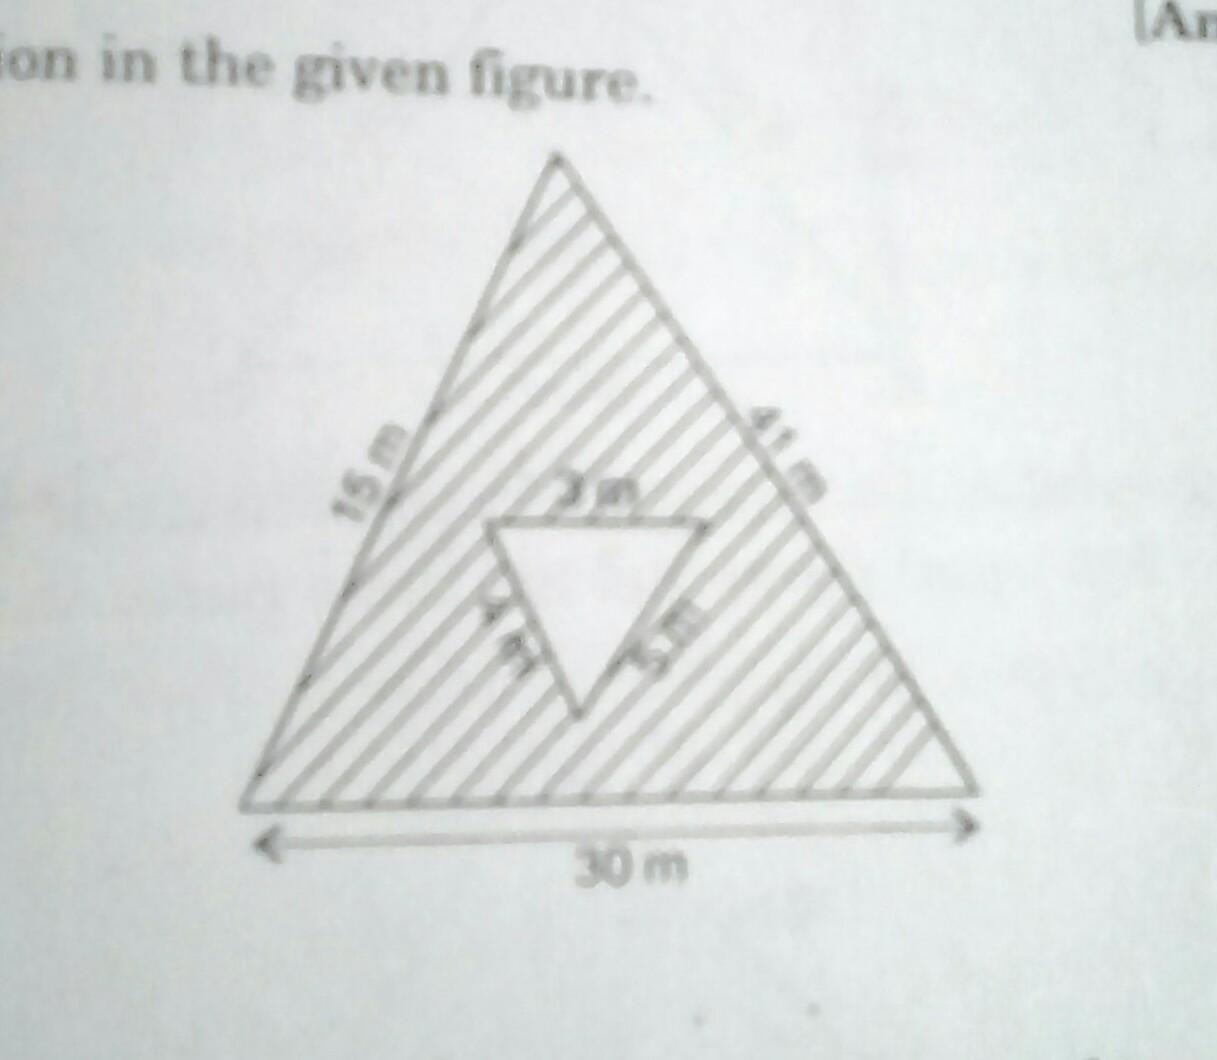 Find The Area Of Shaded Region In The Given Figure